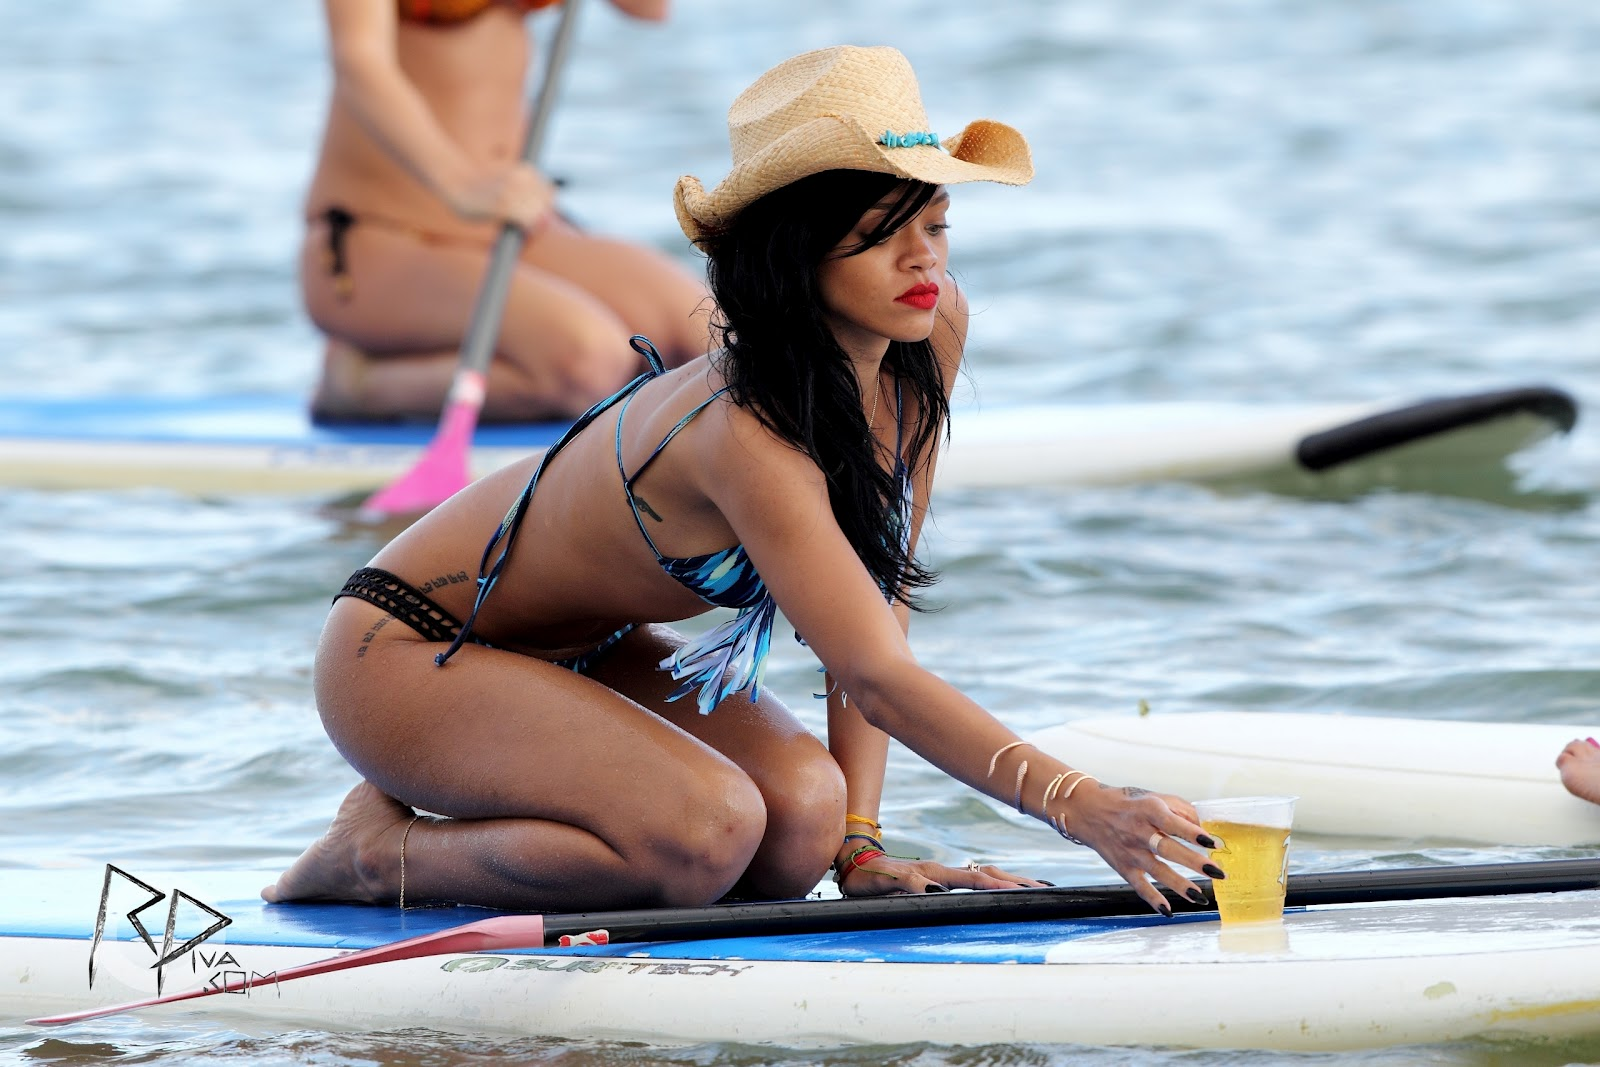 http://1.bp.blogspot.com/-kn0BhfUkhPk/T9NPw42mx7I/AAAAAAAAMzY/yAKOdSst41o/s1600/In-A-Bikini-On-The-Beach-In-Hawaii-28-April-2012-rihanna-30664577-2560-1707.jpg